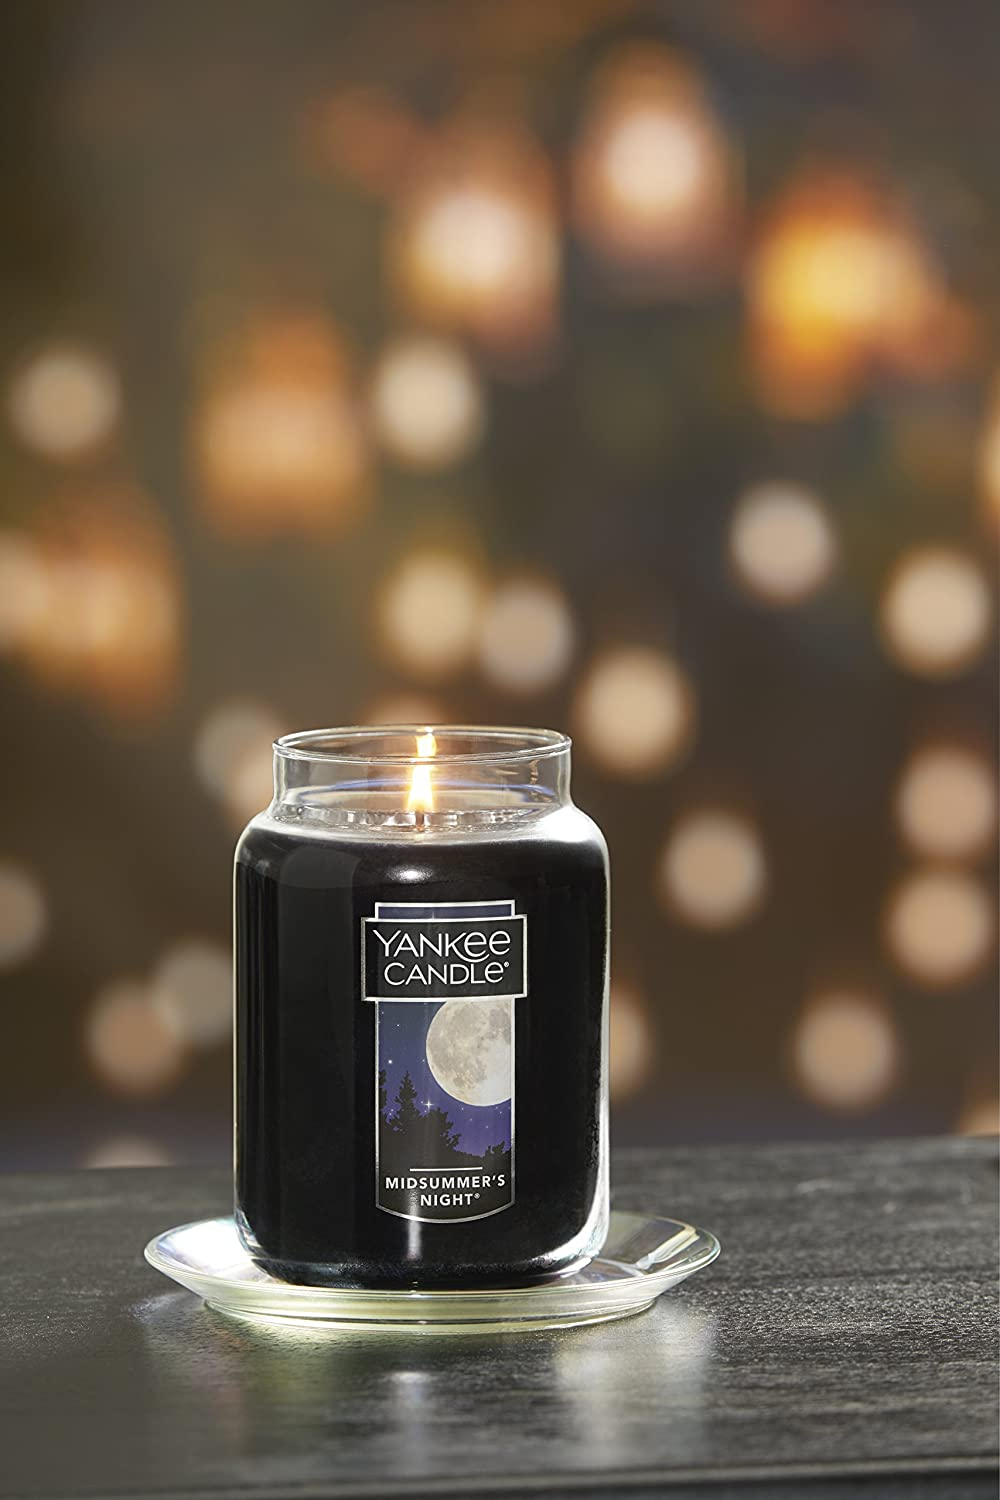 Yankee Candle Large Jar Candle Midsummer's Night: Yankee Candle: Home & Kitchen